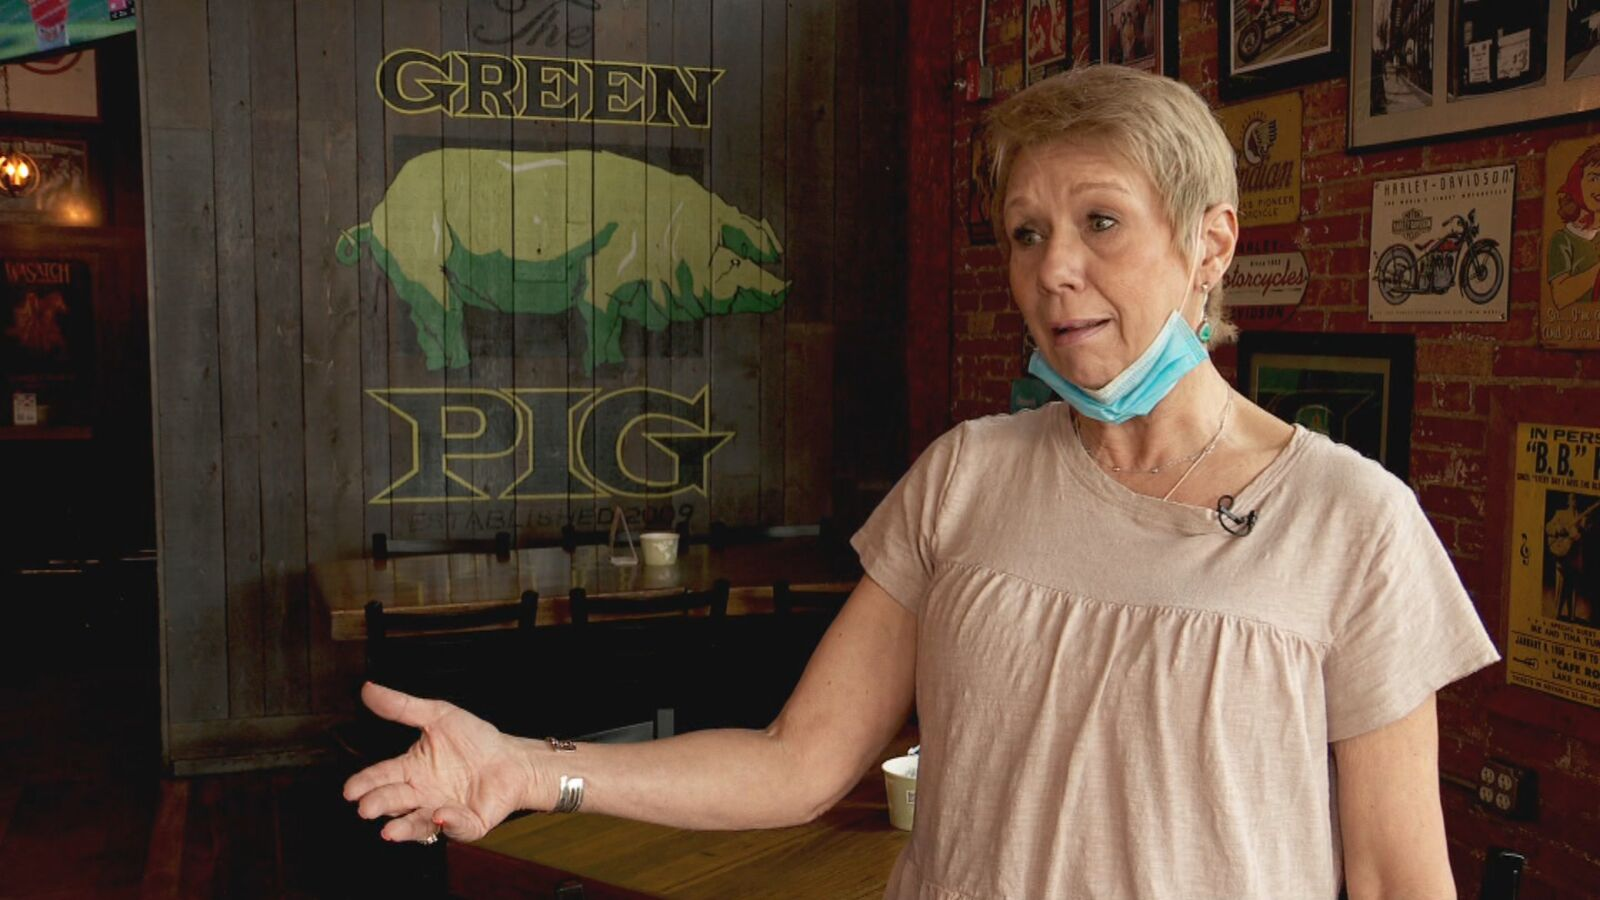 Bridget Gordon, owner of the Green Pig Pub, says the 6 feet of spacing the state required slashed capacity. (KUTV)